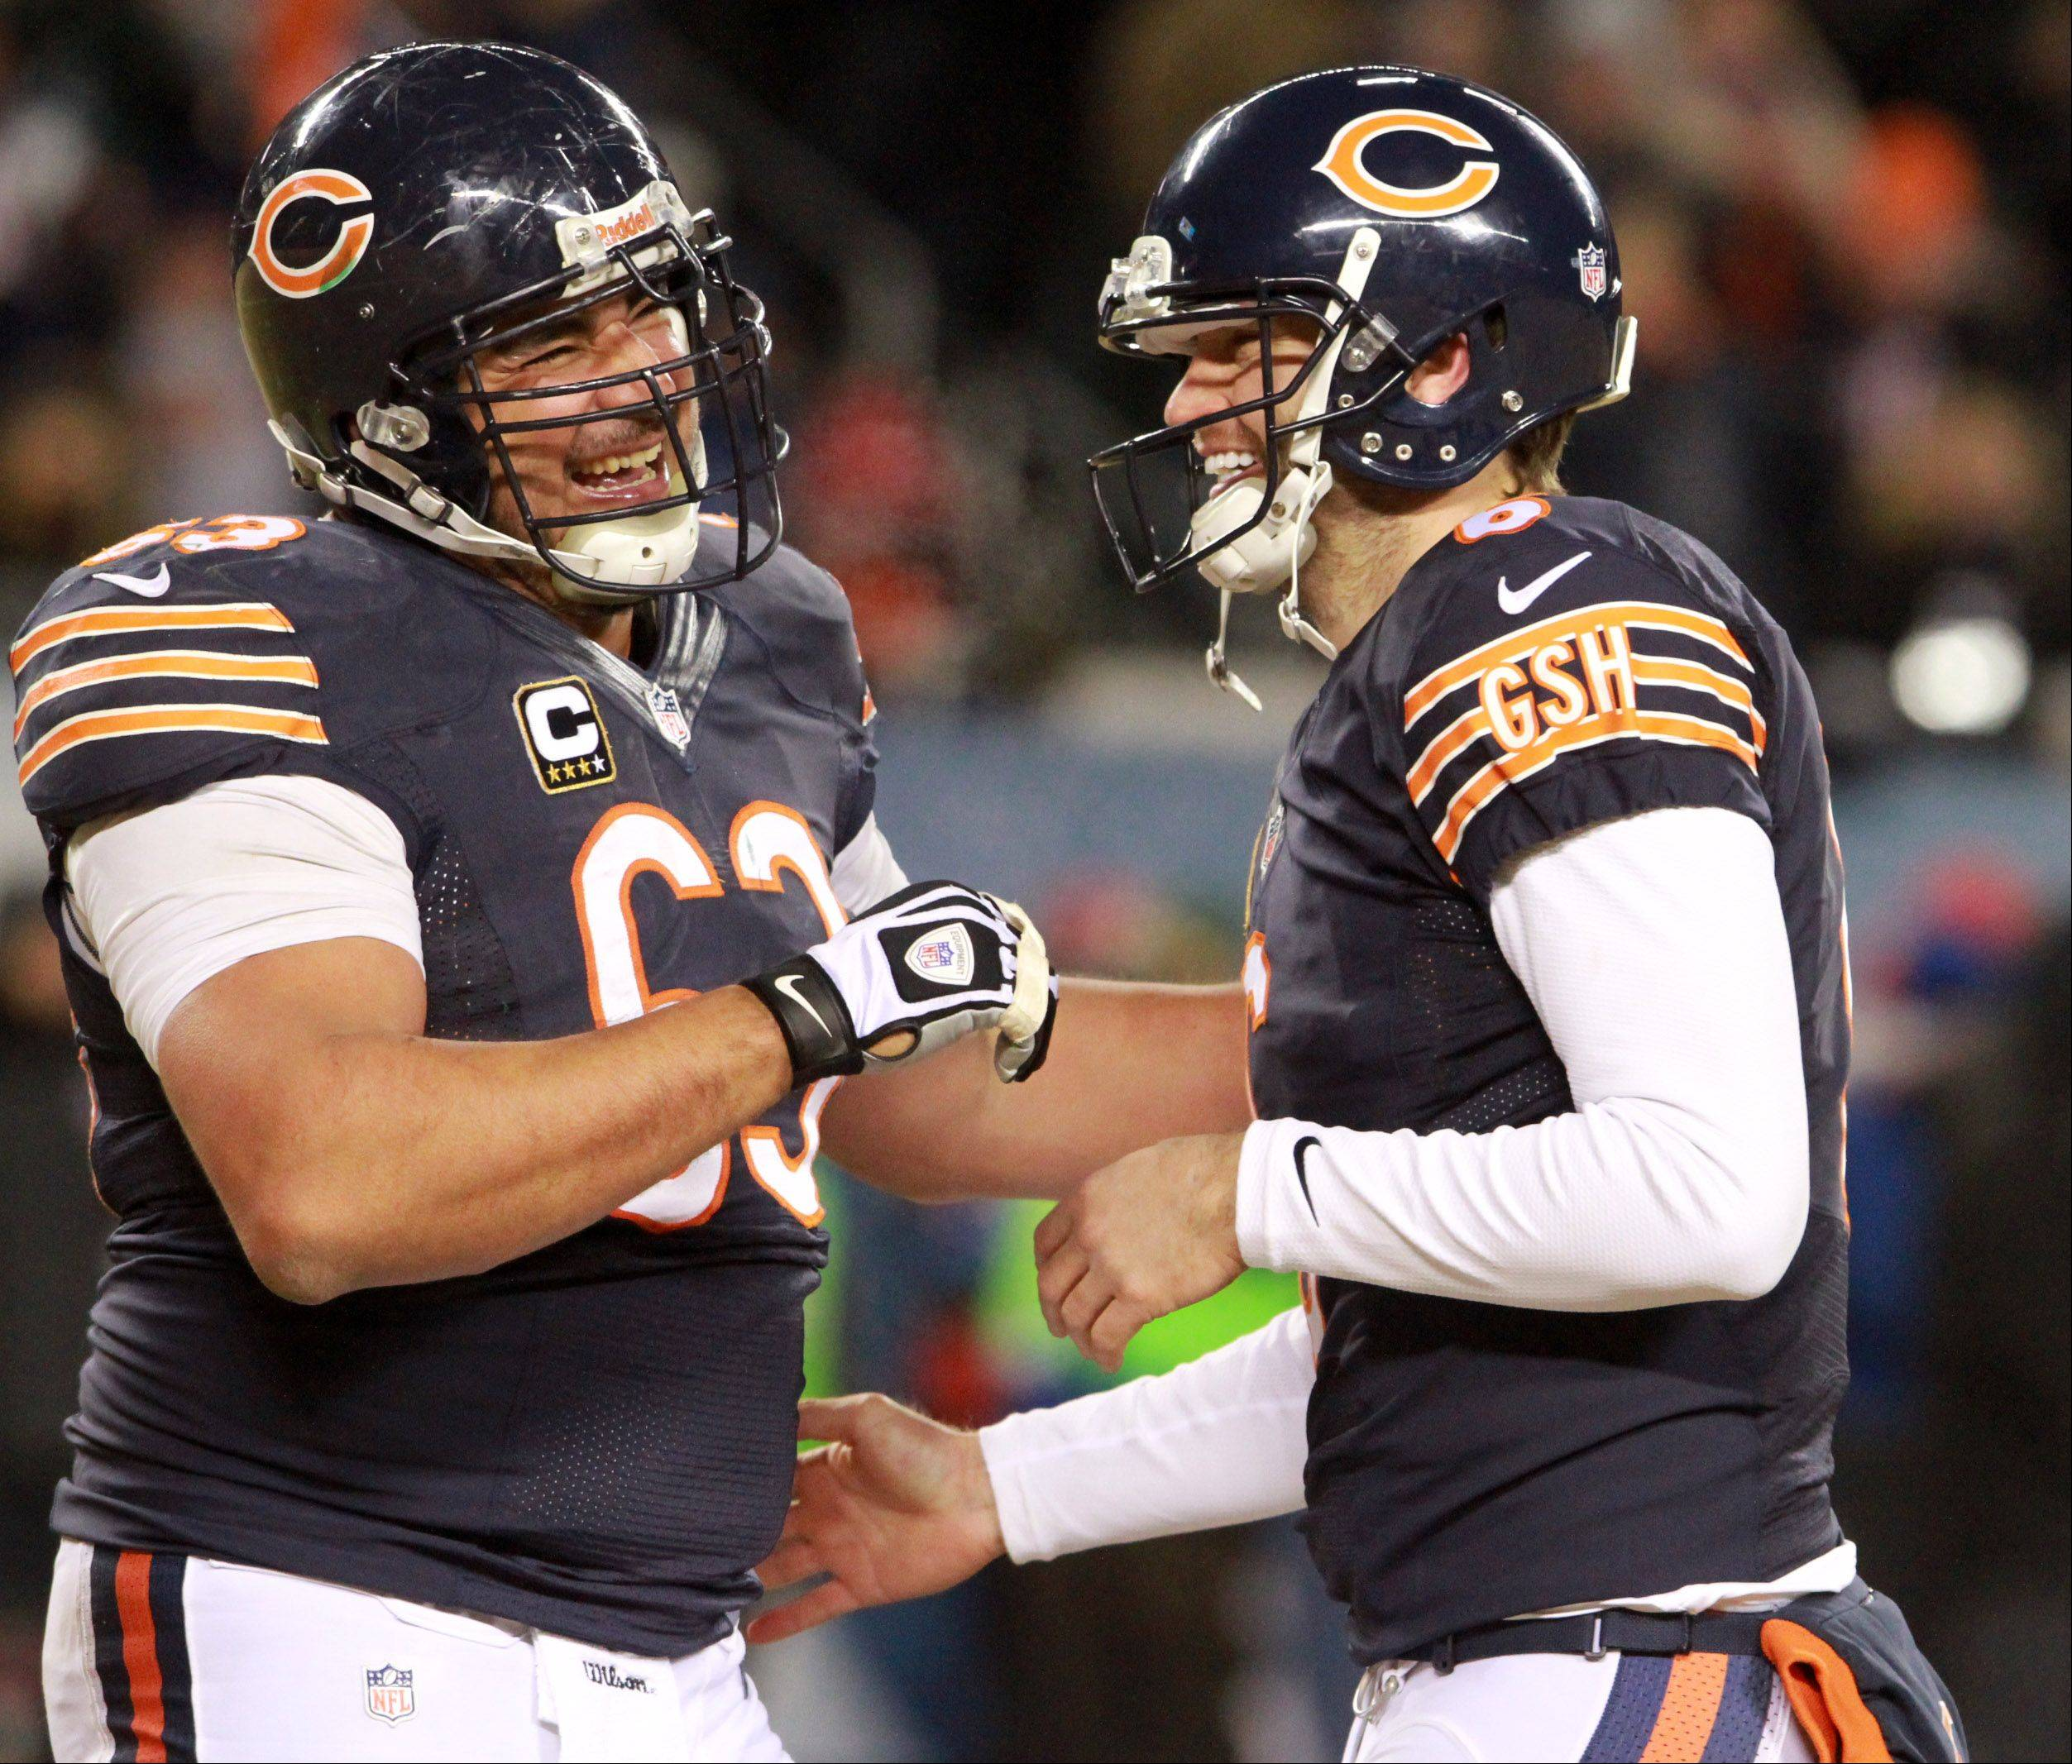 Quarterback Jay Cutler and veteran center Roberto Garza are free agents whose future with the Bears will be determined in the off-season.